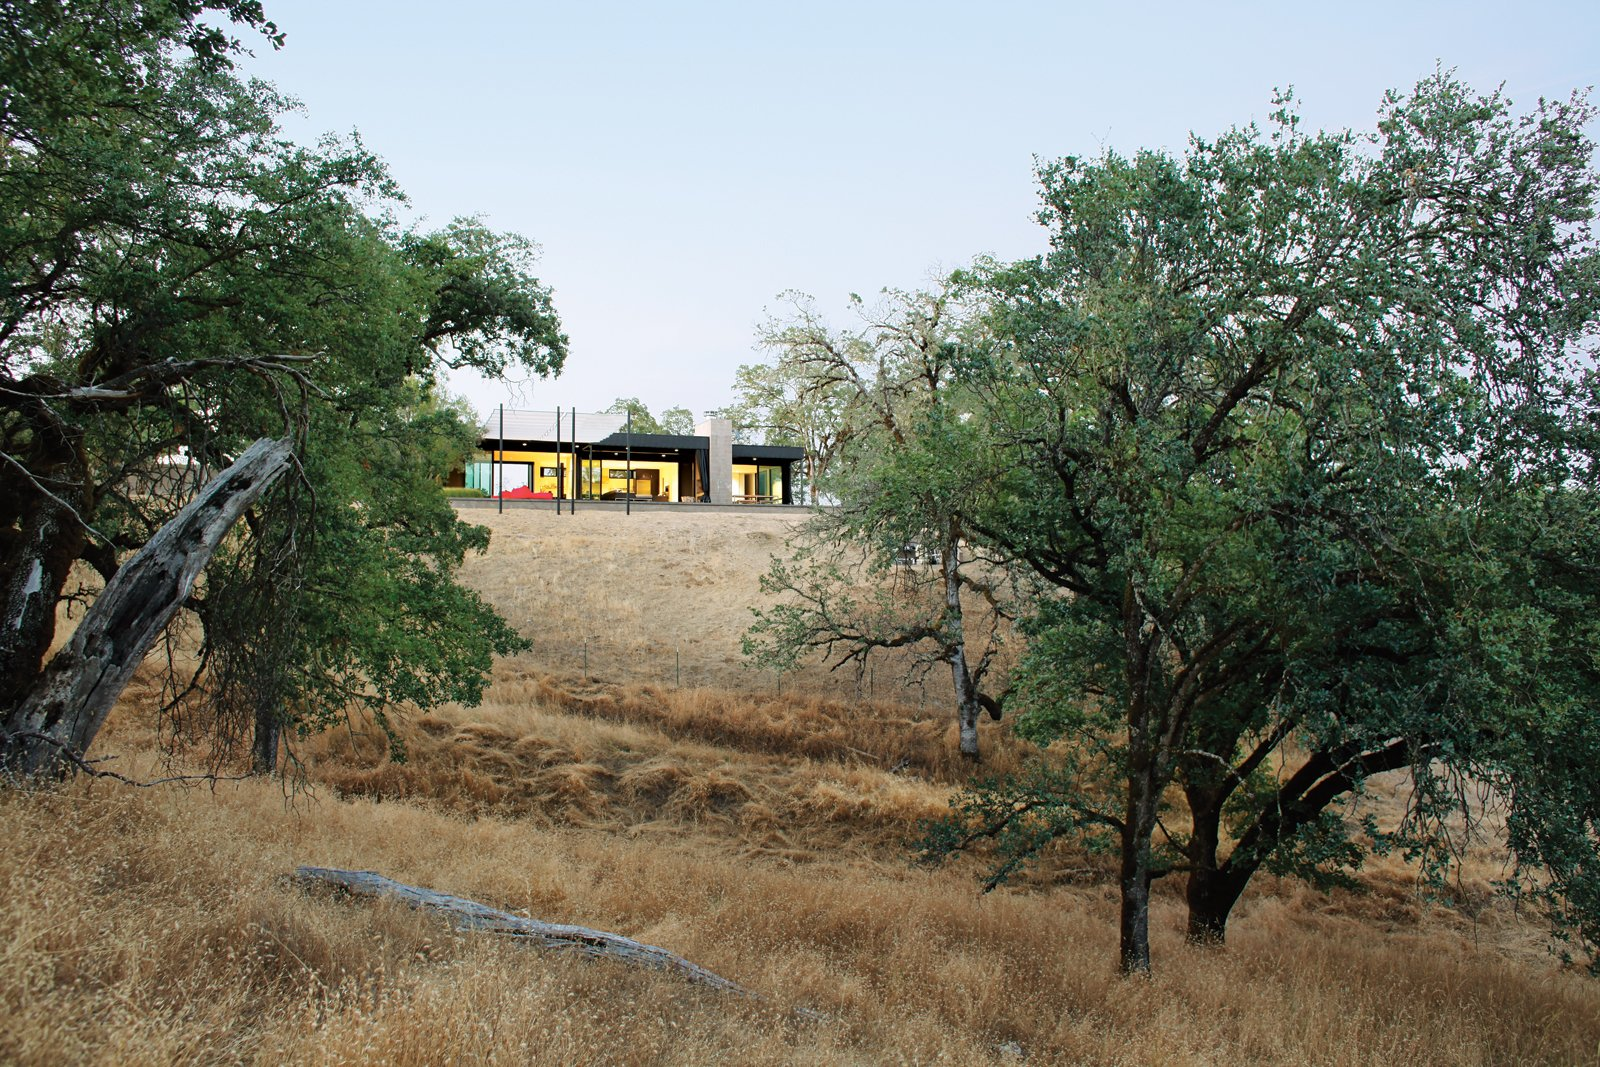 """Though the Burtons are landscape architects, they took an intentionally hands-off approach to their own land, which is part of the 1,800-acre Long Valley Ranch, a former cattle ranch. """"We made very few moves, beyond planting fifty olive trees and some native shrubs and grasses,"""" says Bill. """"We wanted nothing in the landscape to be edible or pretty, nothing to attract animals to the house."""" Nevertheless, they've spotted plenty of fauna thanks to motion-activated """"trail cams"""" they use to spy on local wildlife. To date they've snapped photos of mountain lions, bobcats, wild pigs, and a bear.  Photo 7 of 8 in A Simple Plan"""